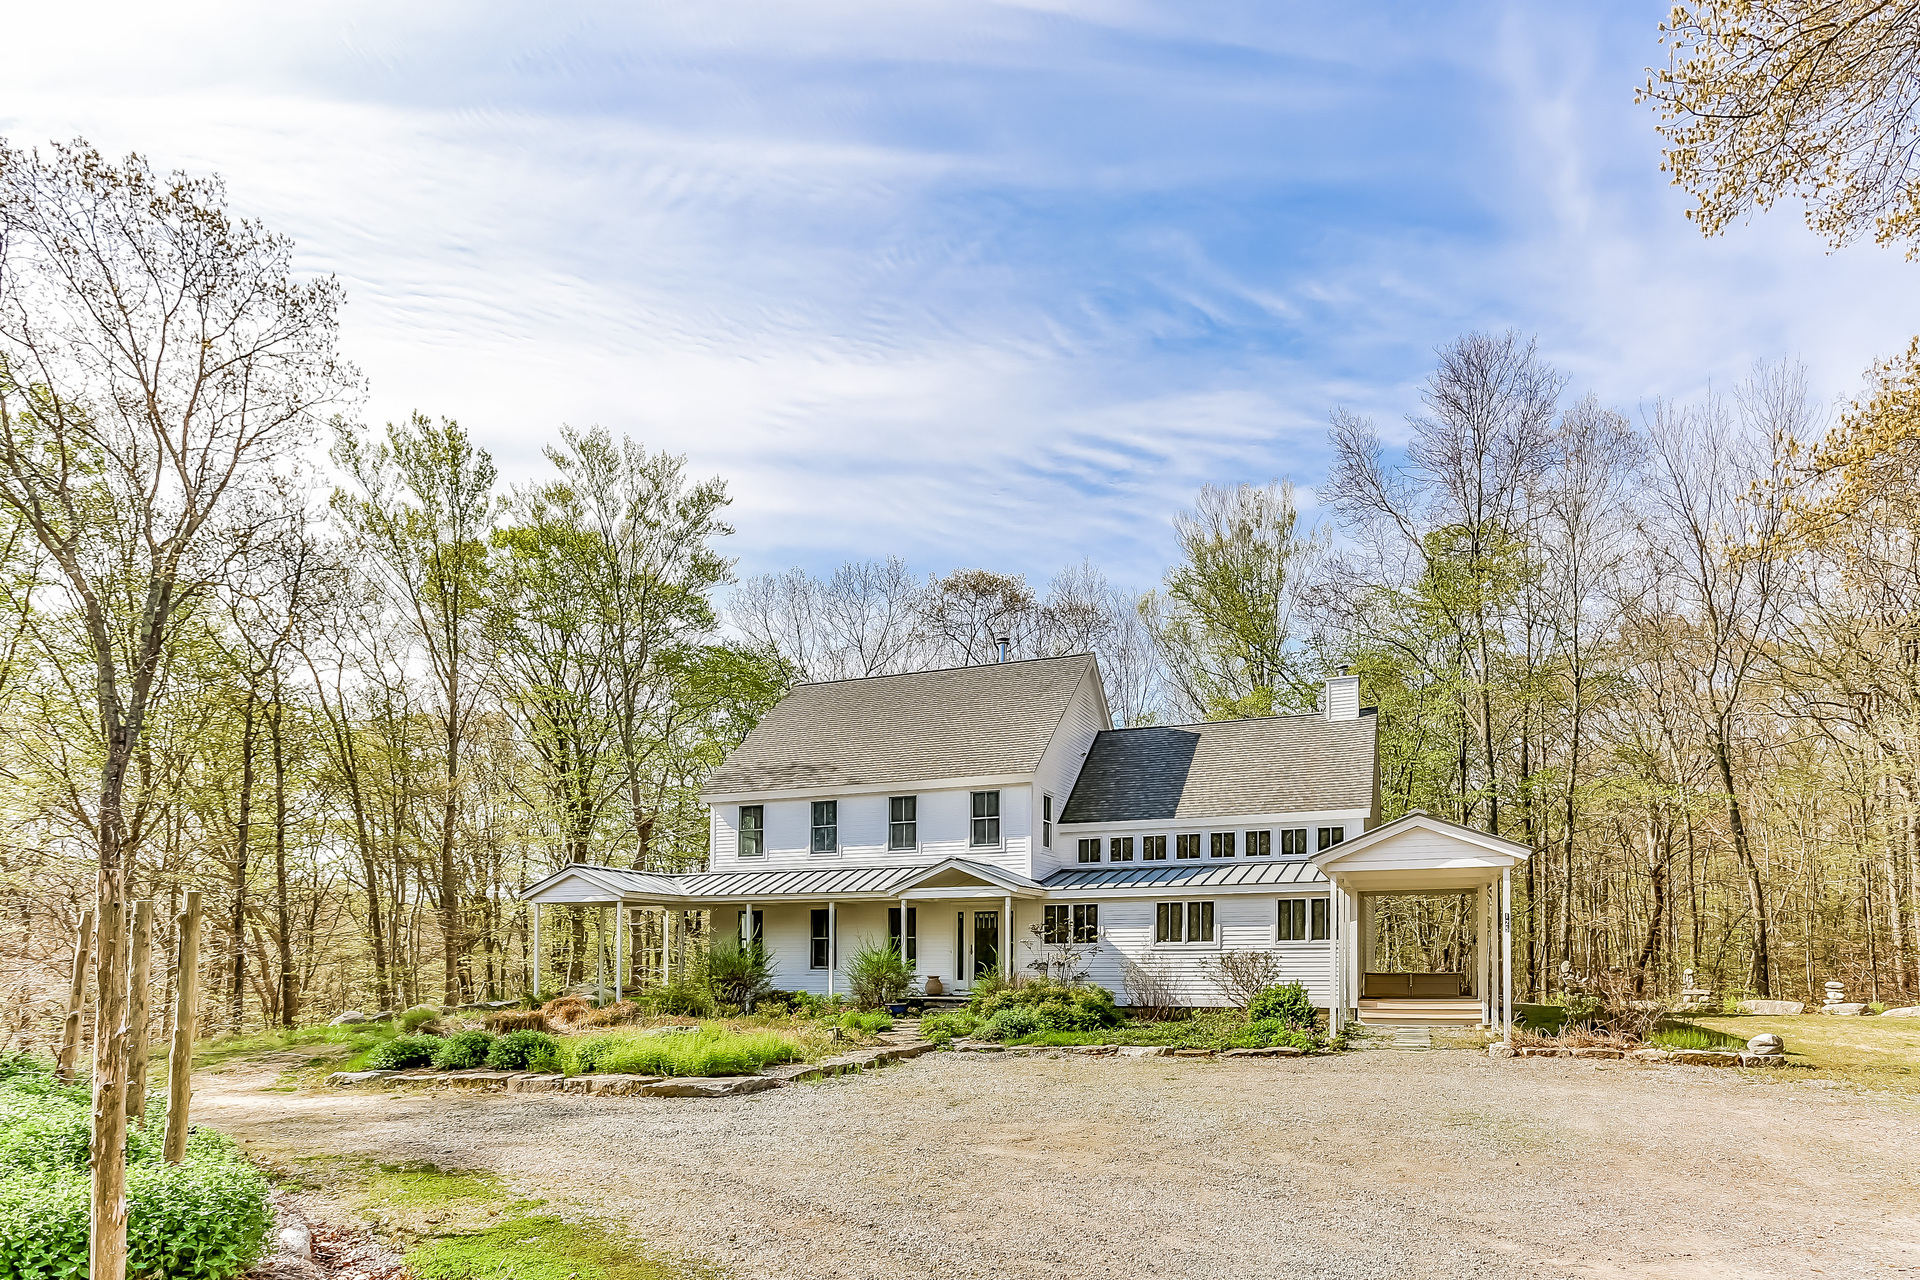 Casa Unifamiliar por un Venta en Custom built home designed to blend the natural landscape with state of the art 125 Fishtown Road Groton, Connecticut 06355 Estados Unidos